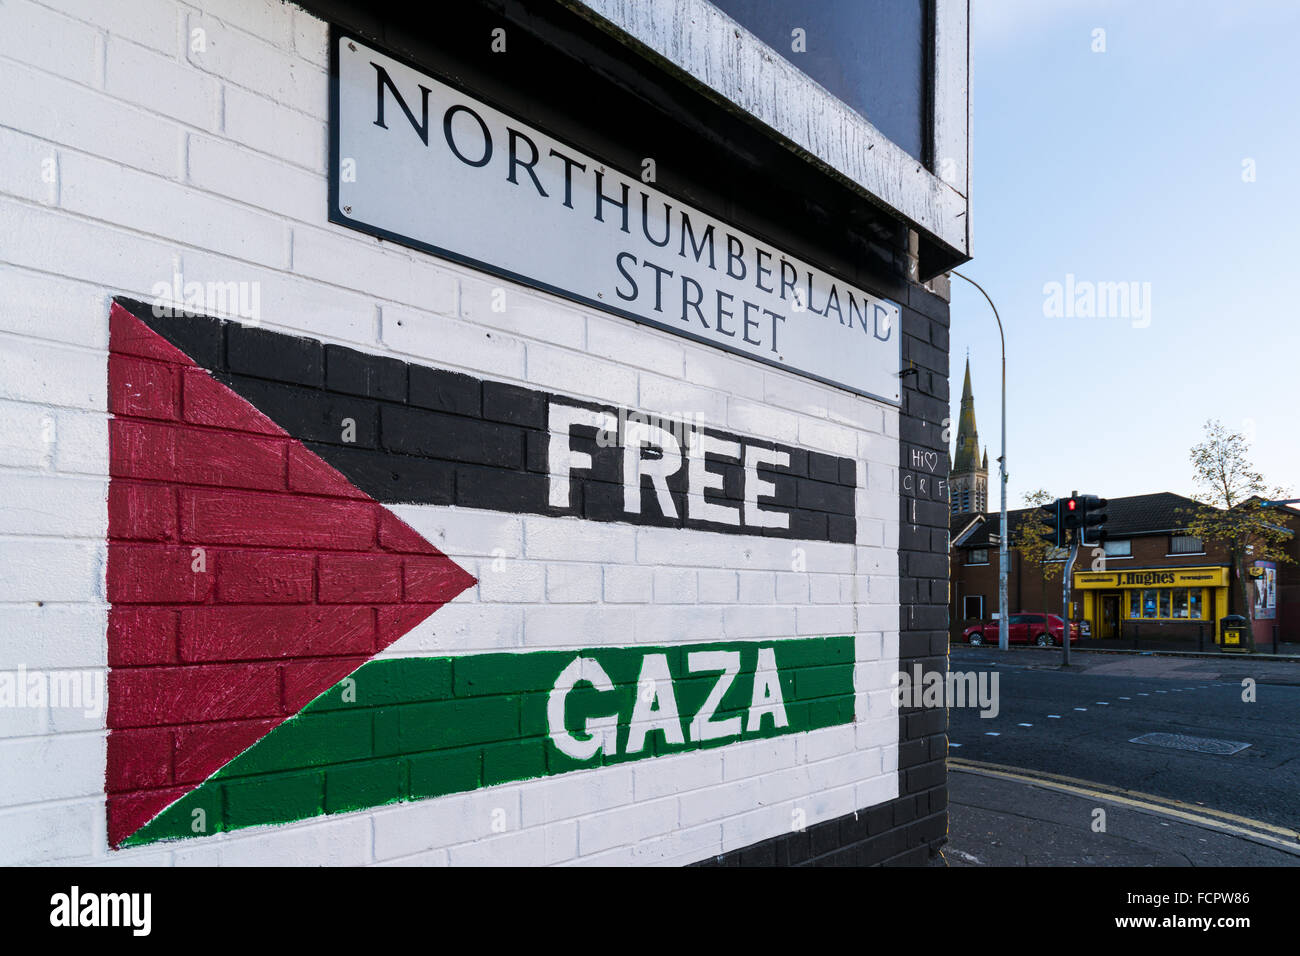 Free Gaza mural painted at corner of Northumberland Street in West Belfast. - Stock Image